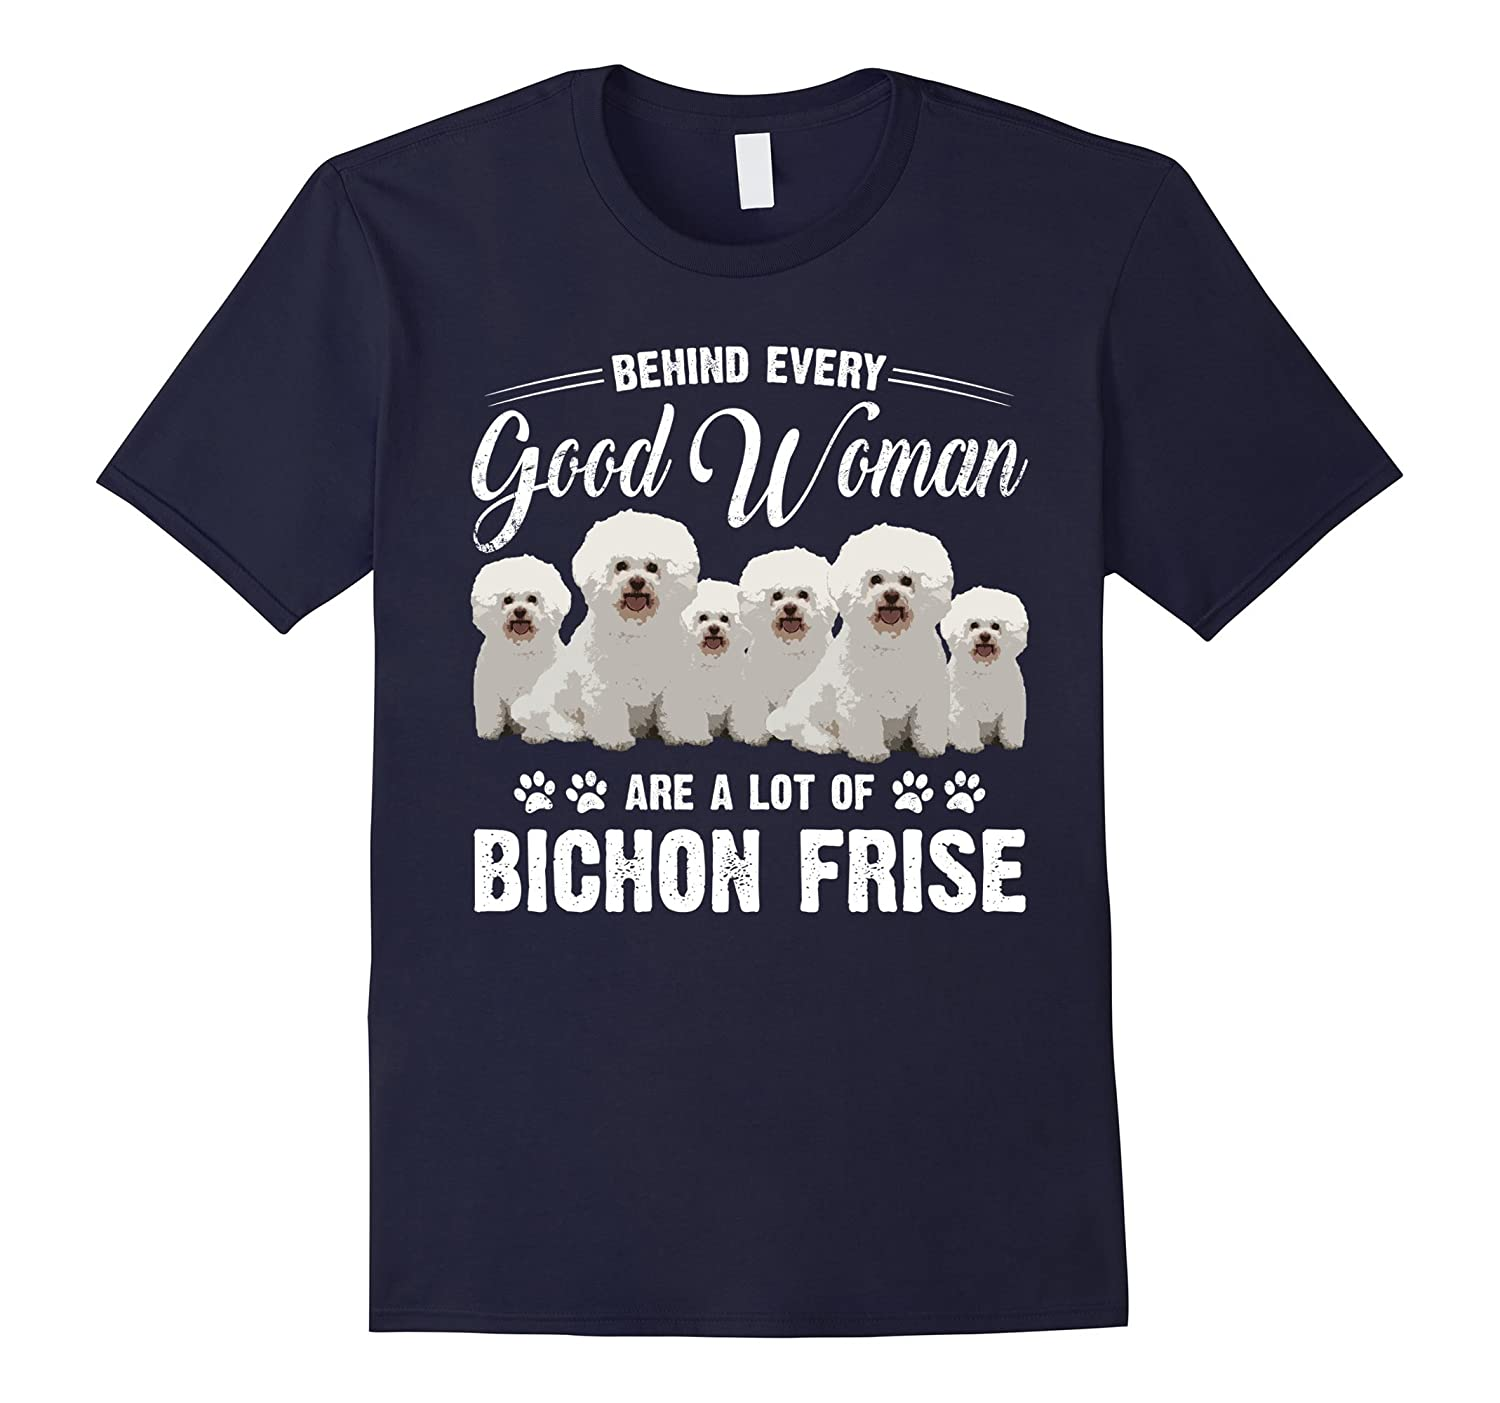 Behind Every Good Woman T-Shirt For Bichon Frise Dogmother-Art